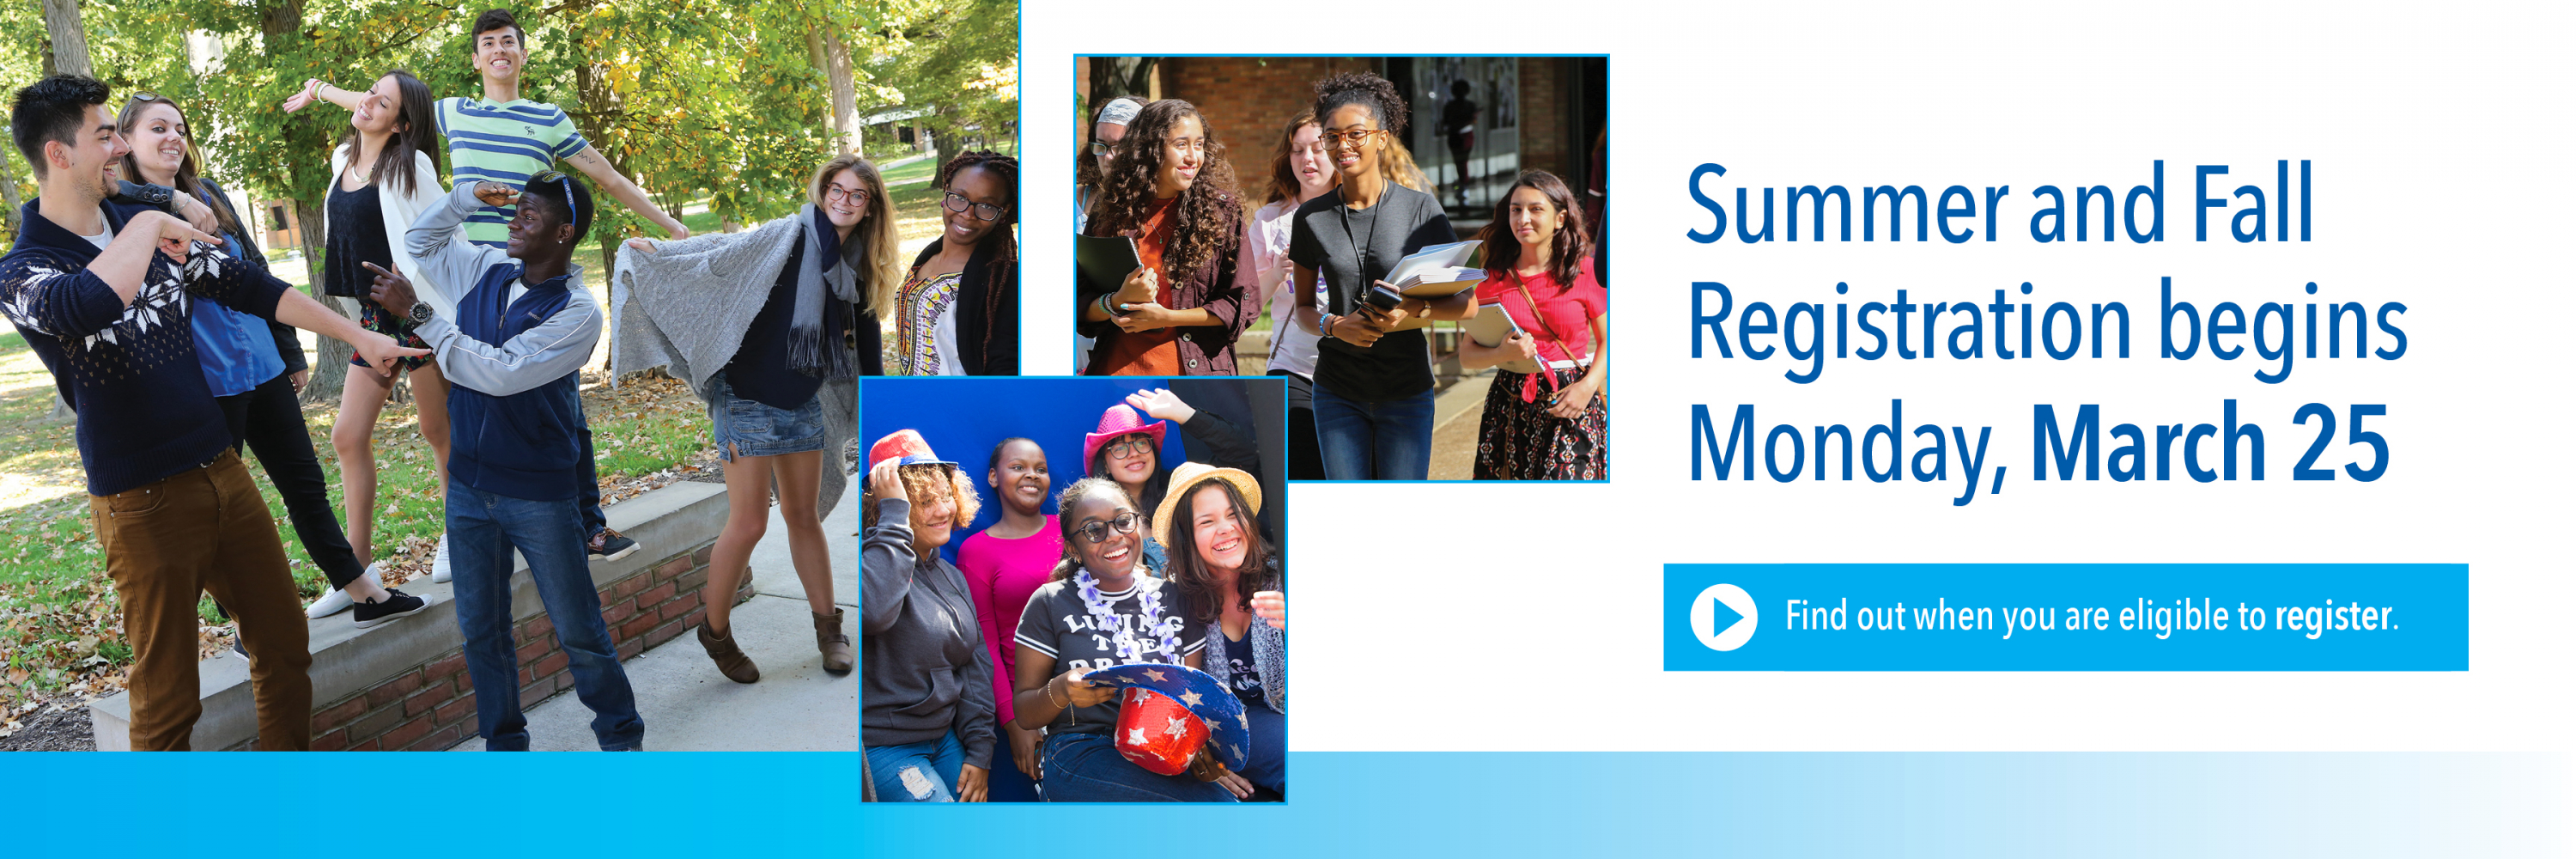 Summer and Fall 2019 Registration begins Monday, March 25